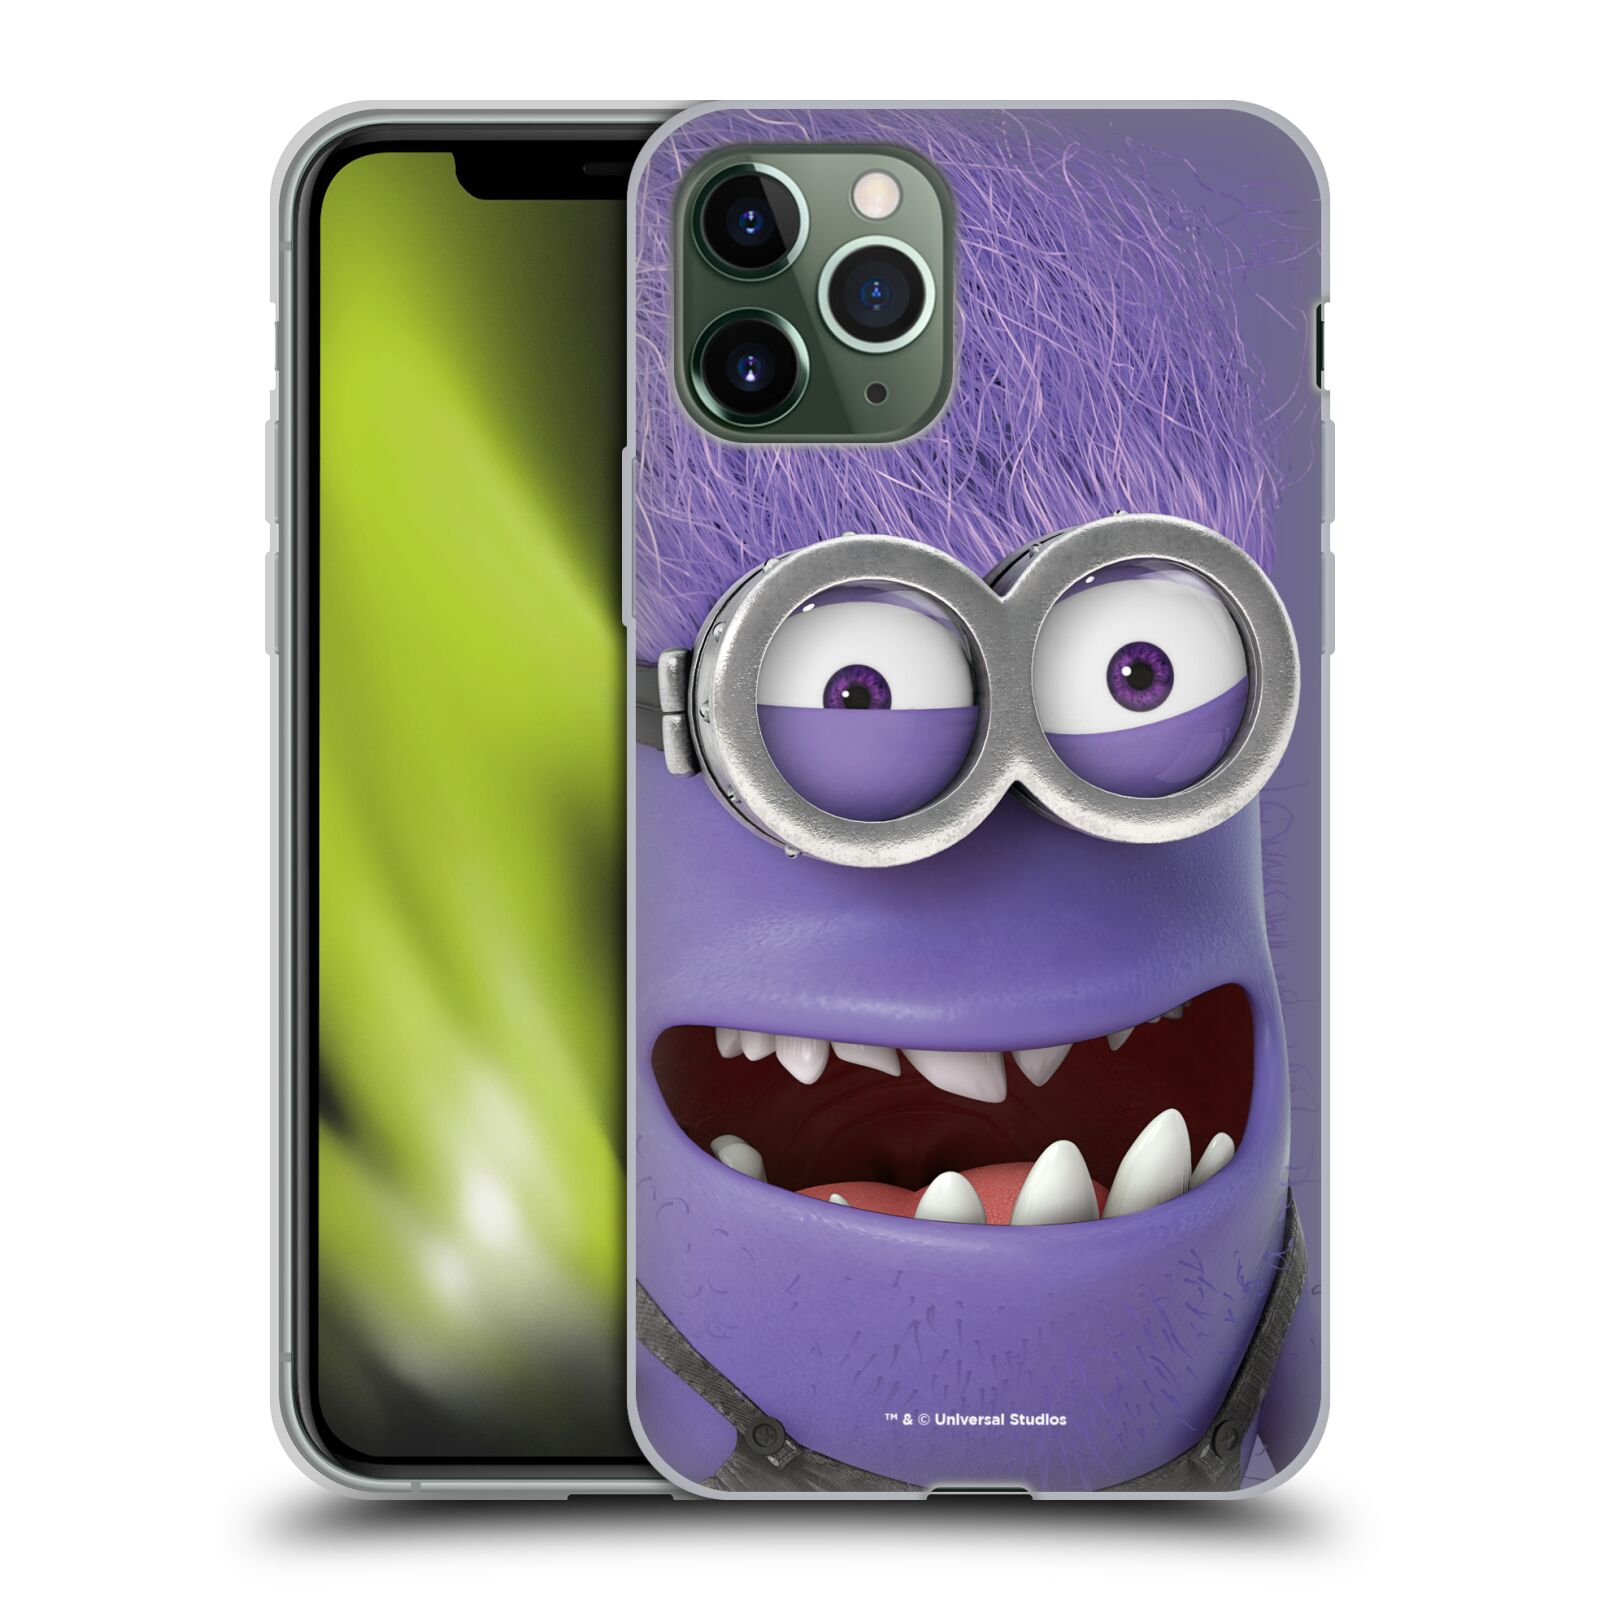 gucci iphone x phone cases , Silikonové pouzdro na mobil Apple iPhone 11 Pro - Head Case - Zlý Mimoň z filmu Já, padouch - Despicable Me